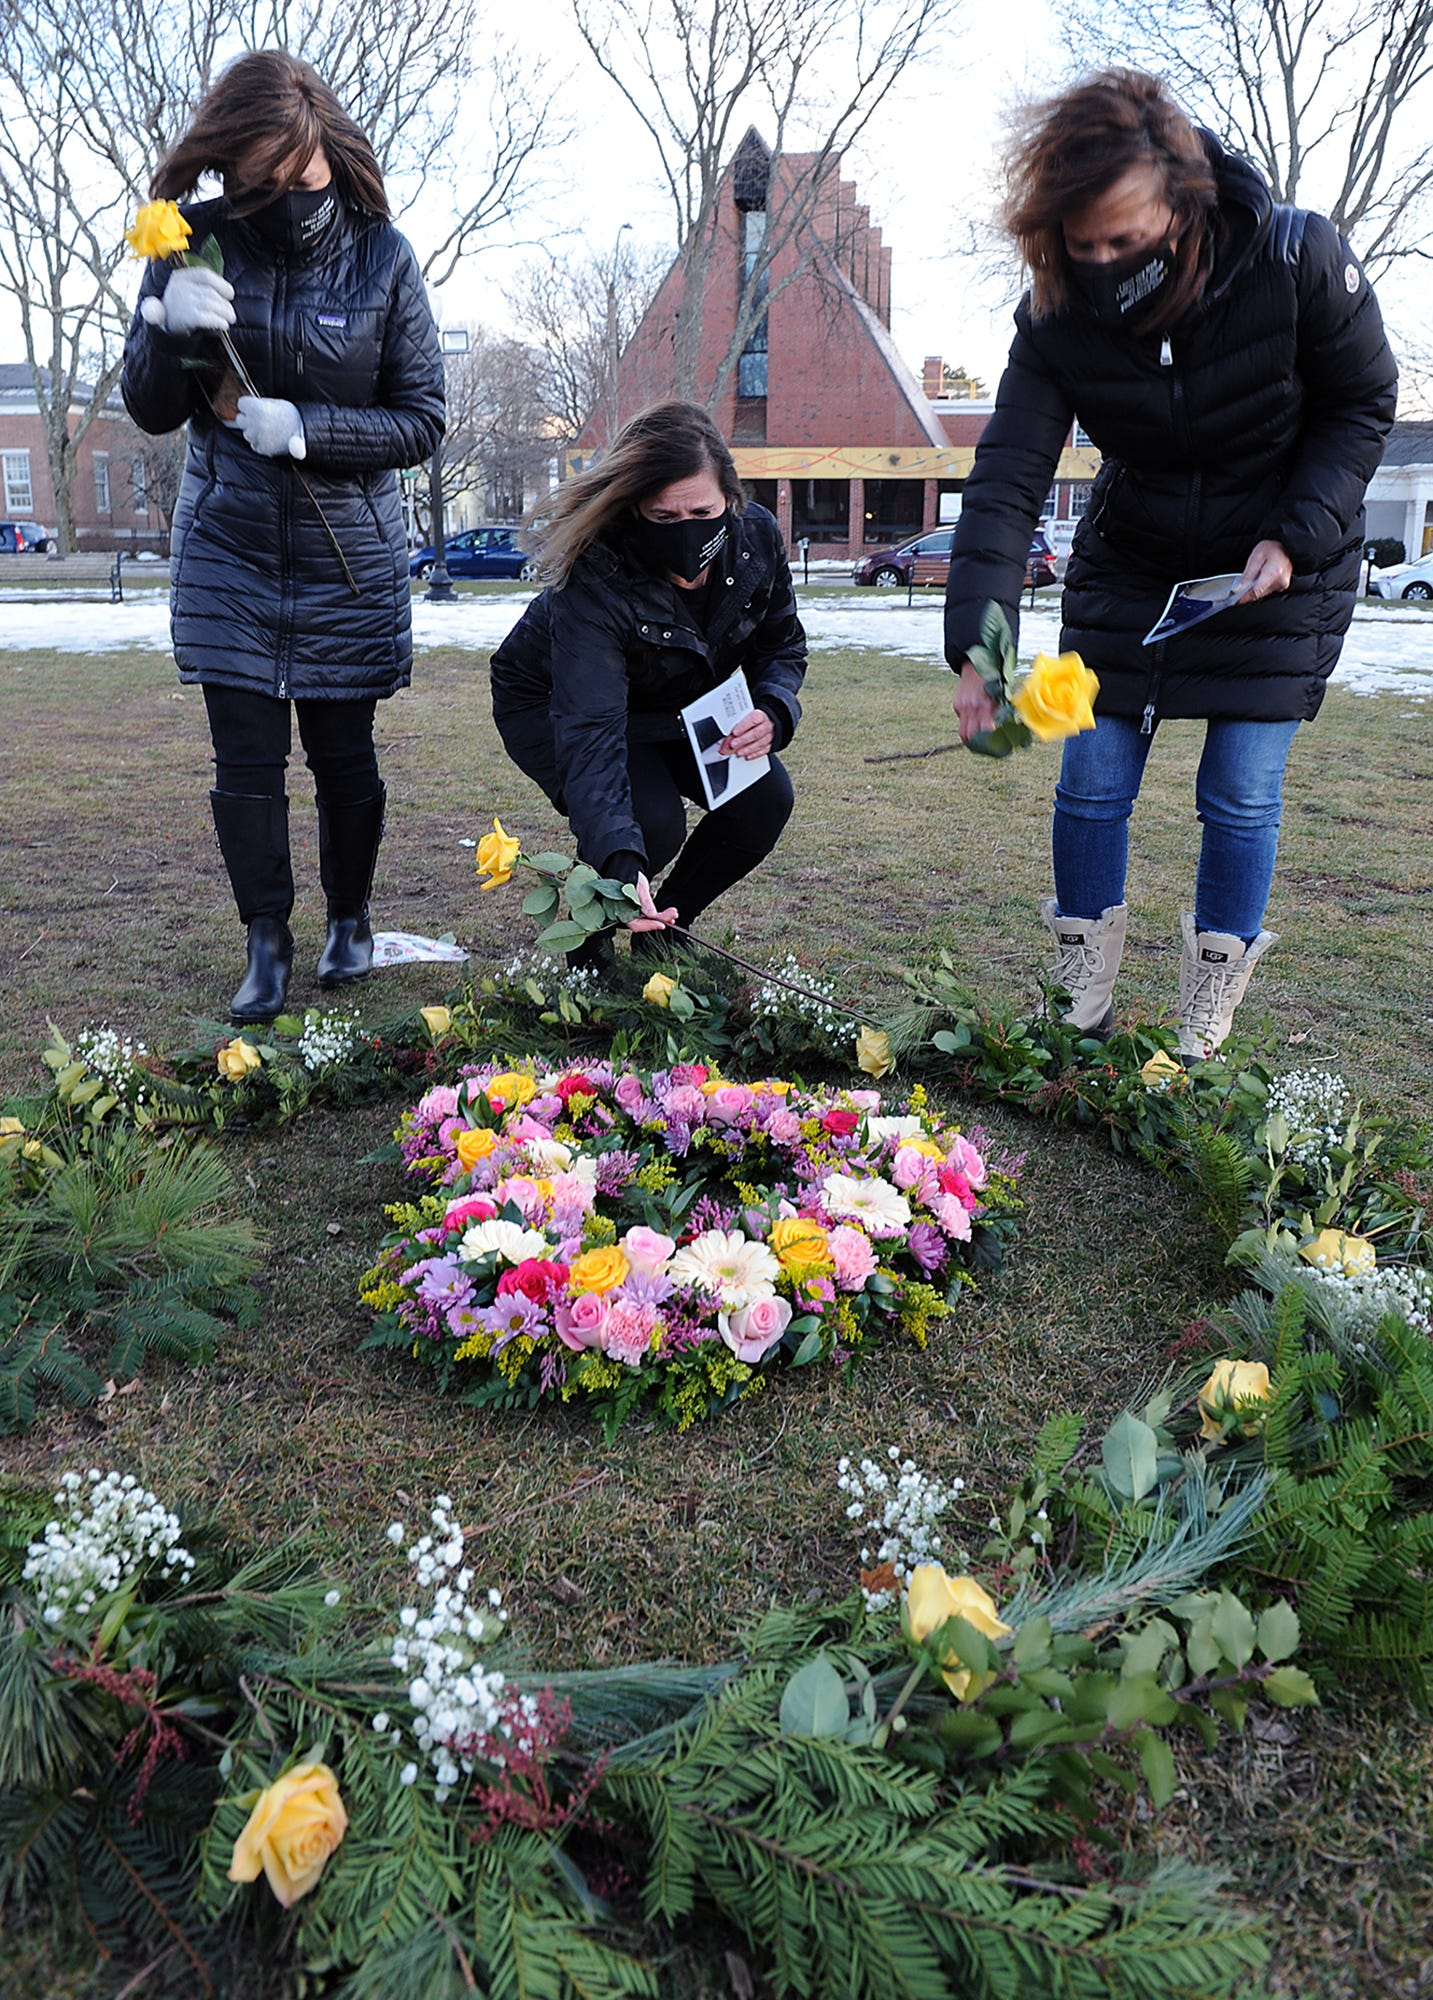 Massachusetts residents Jill Federman, of Hingham, Lisa Mazerolle, of Easton, and Michelle Pepe, of Sharon, all lost their fathers to COVID-19. They place yellow roses and photographs on the Floral Heart Project on the Natick town common on March 1, 2021.